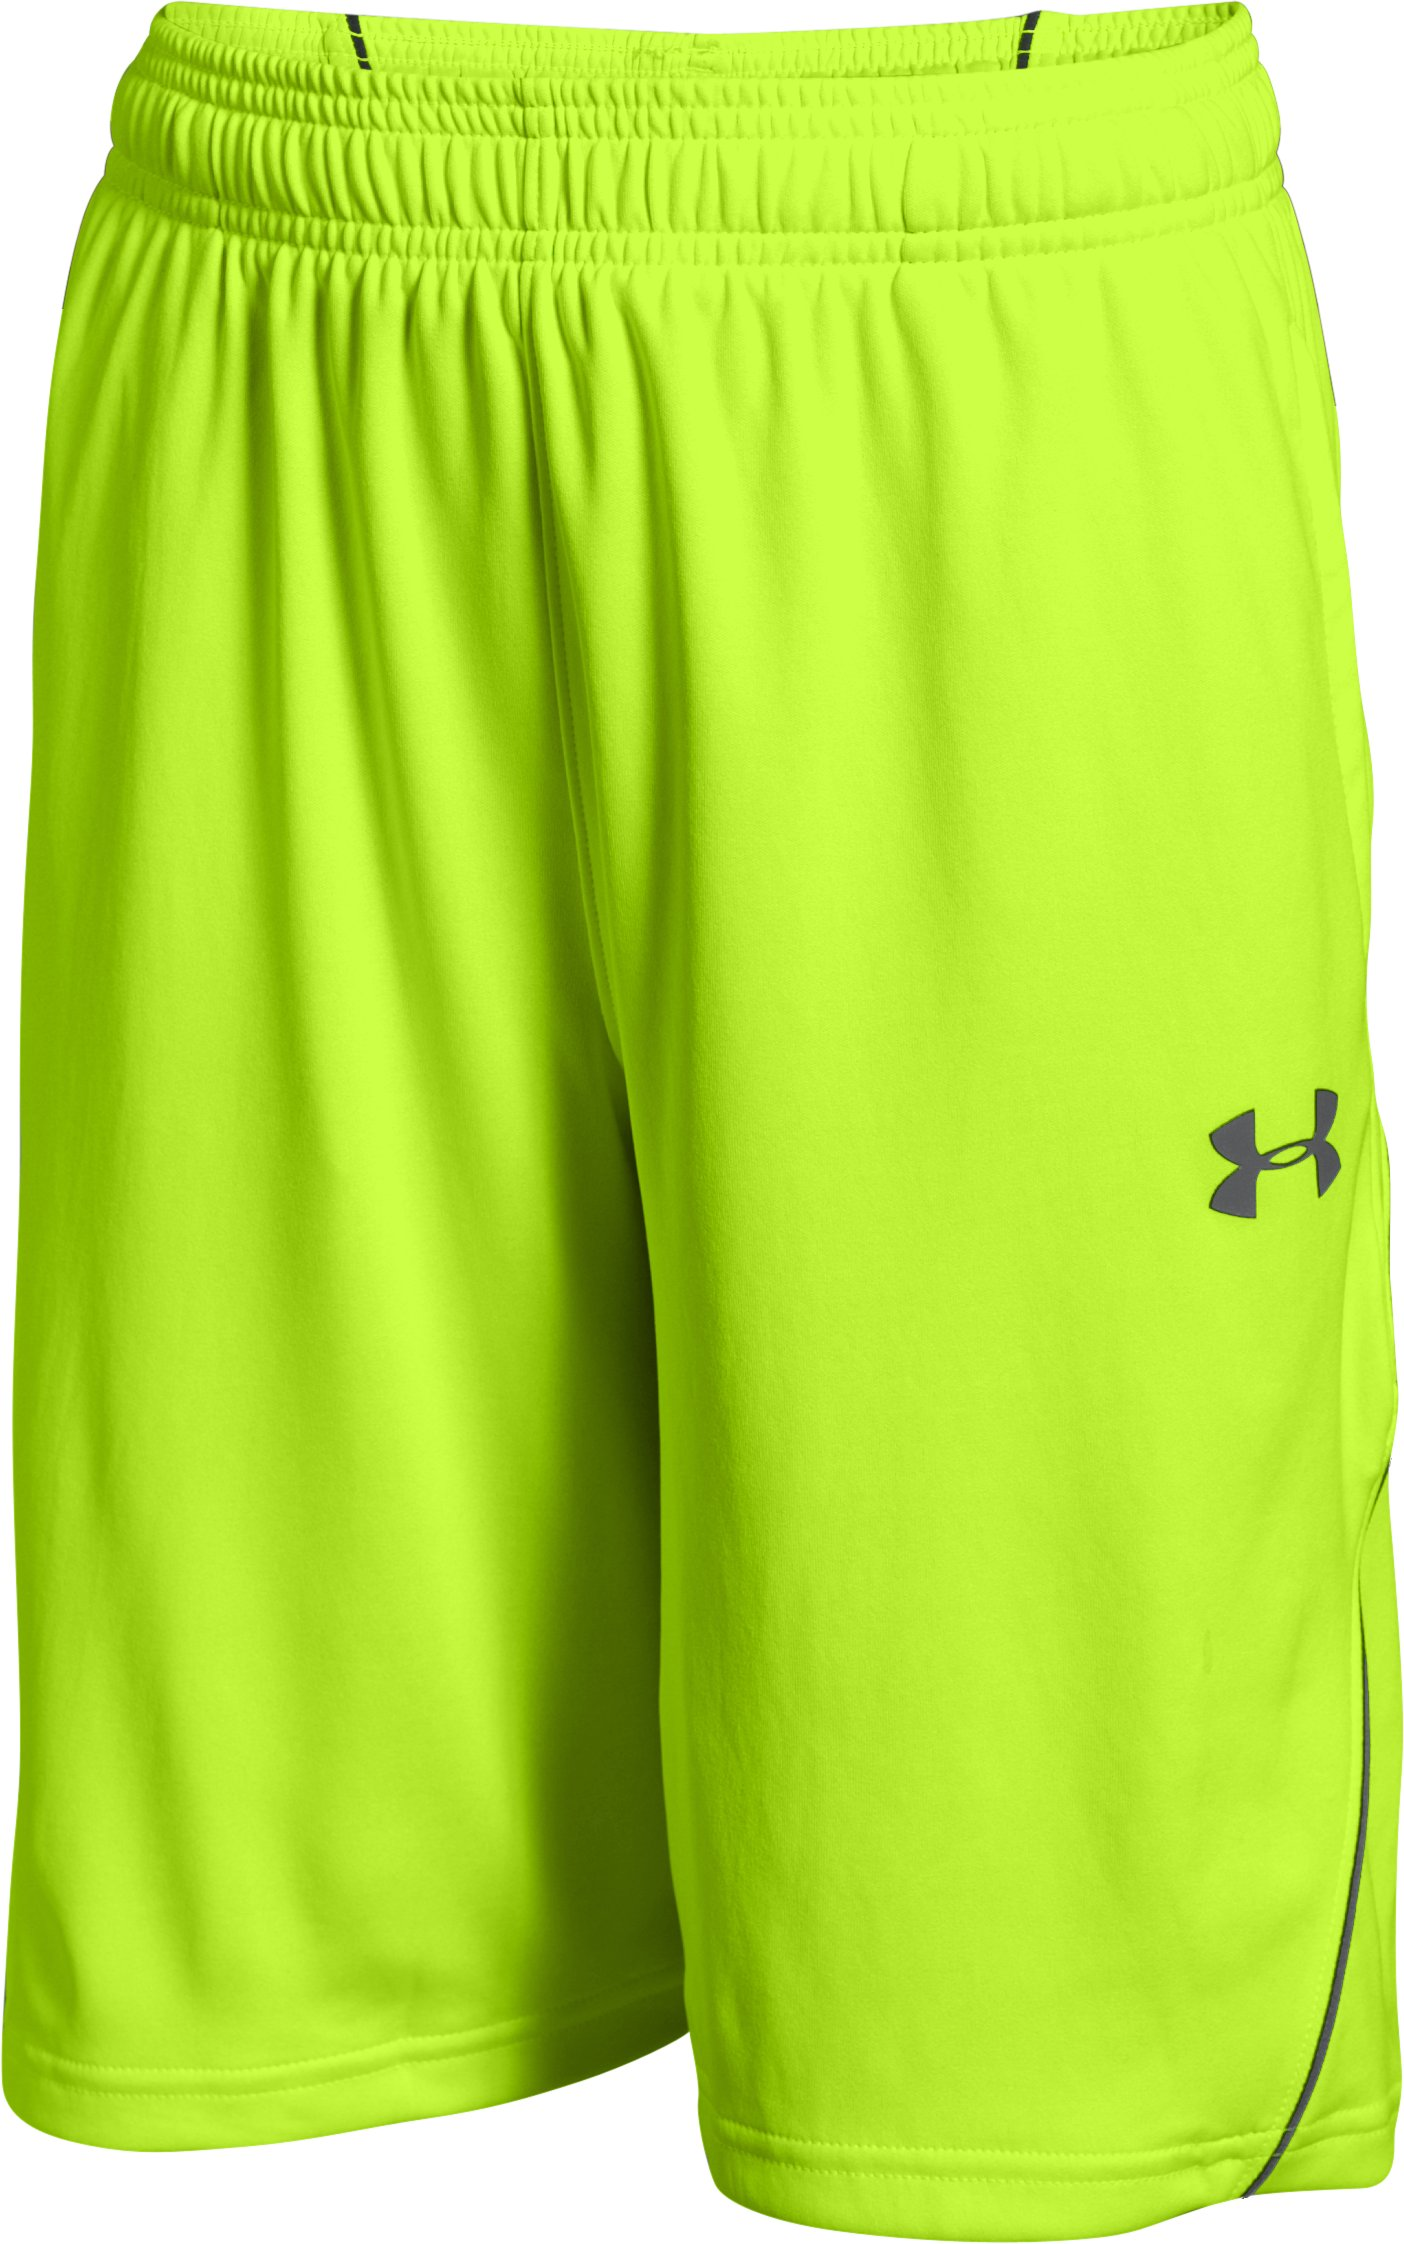 Boys' UA Never Back Down Shorts, FUEL GREEN, zoomed image